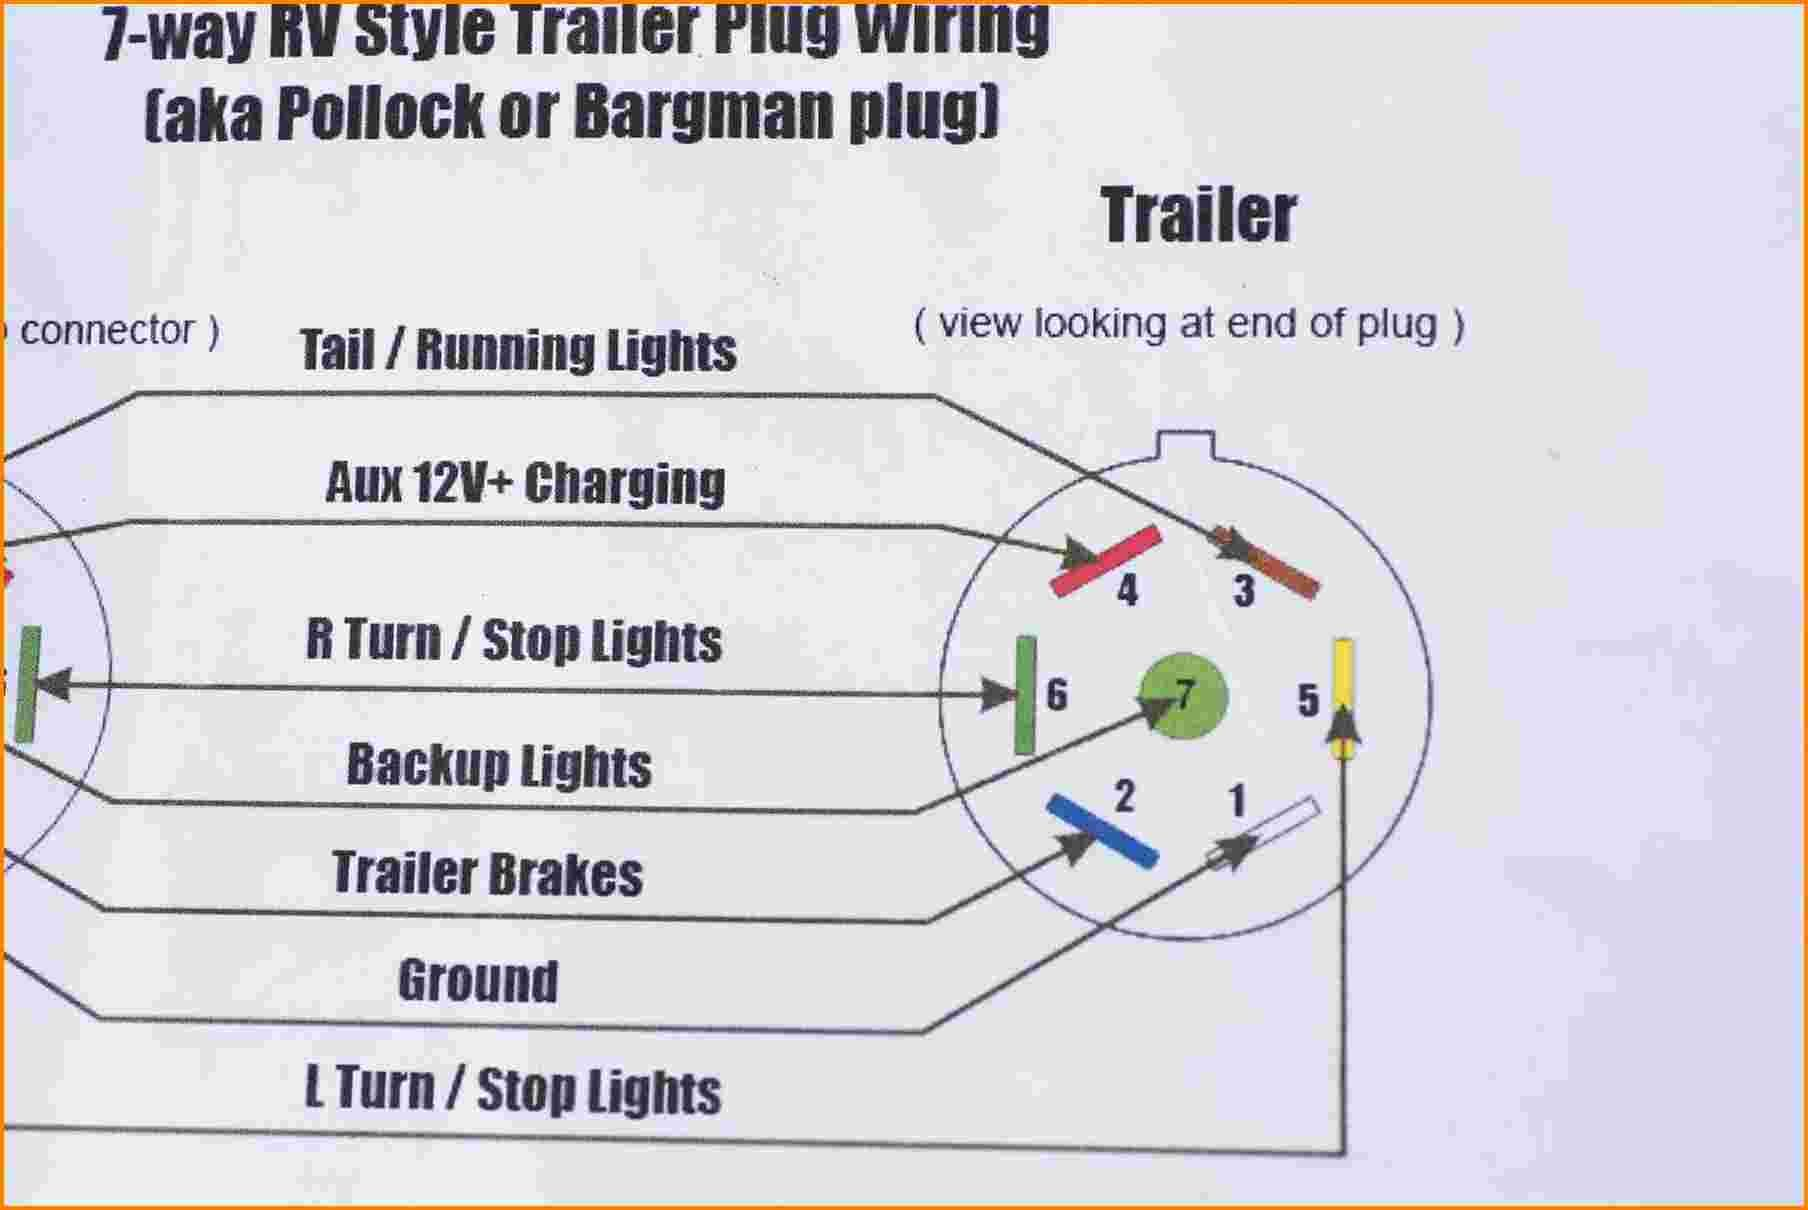 diagram] jeep cherokee trailer wiring harness diagram full version hd  quality harness diagram - midfacesuspension.photoscratch.fr  midfacesuspension.photoscratch.fr